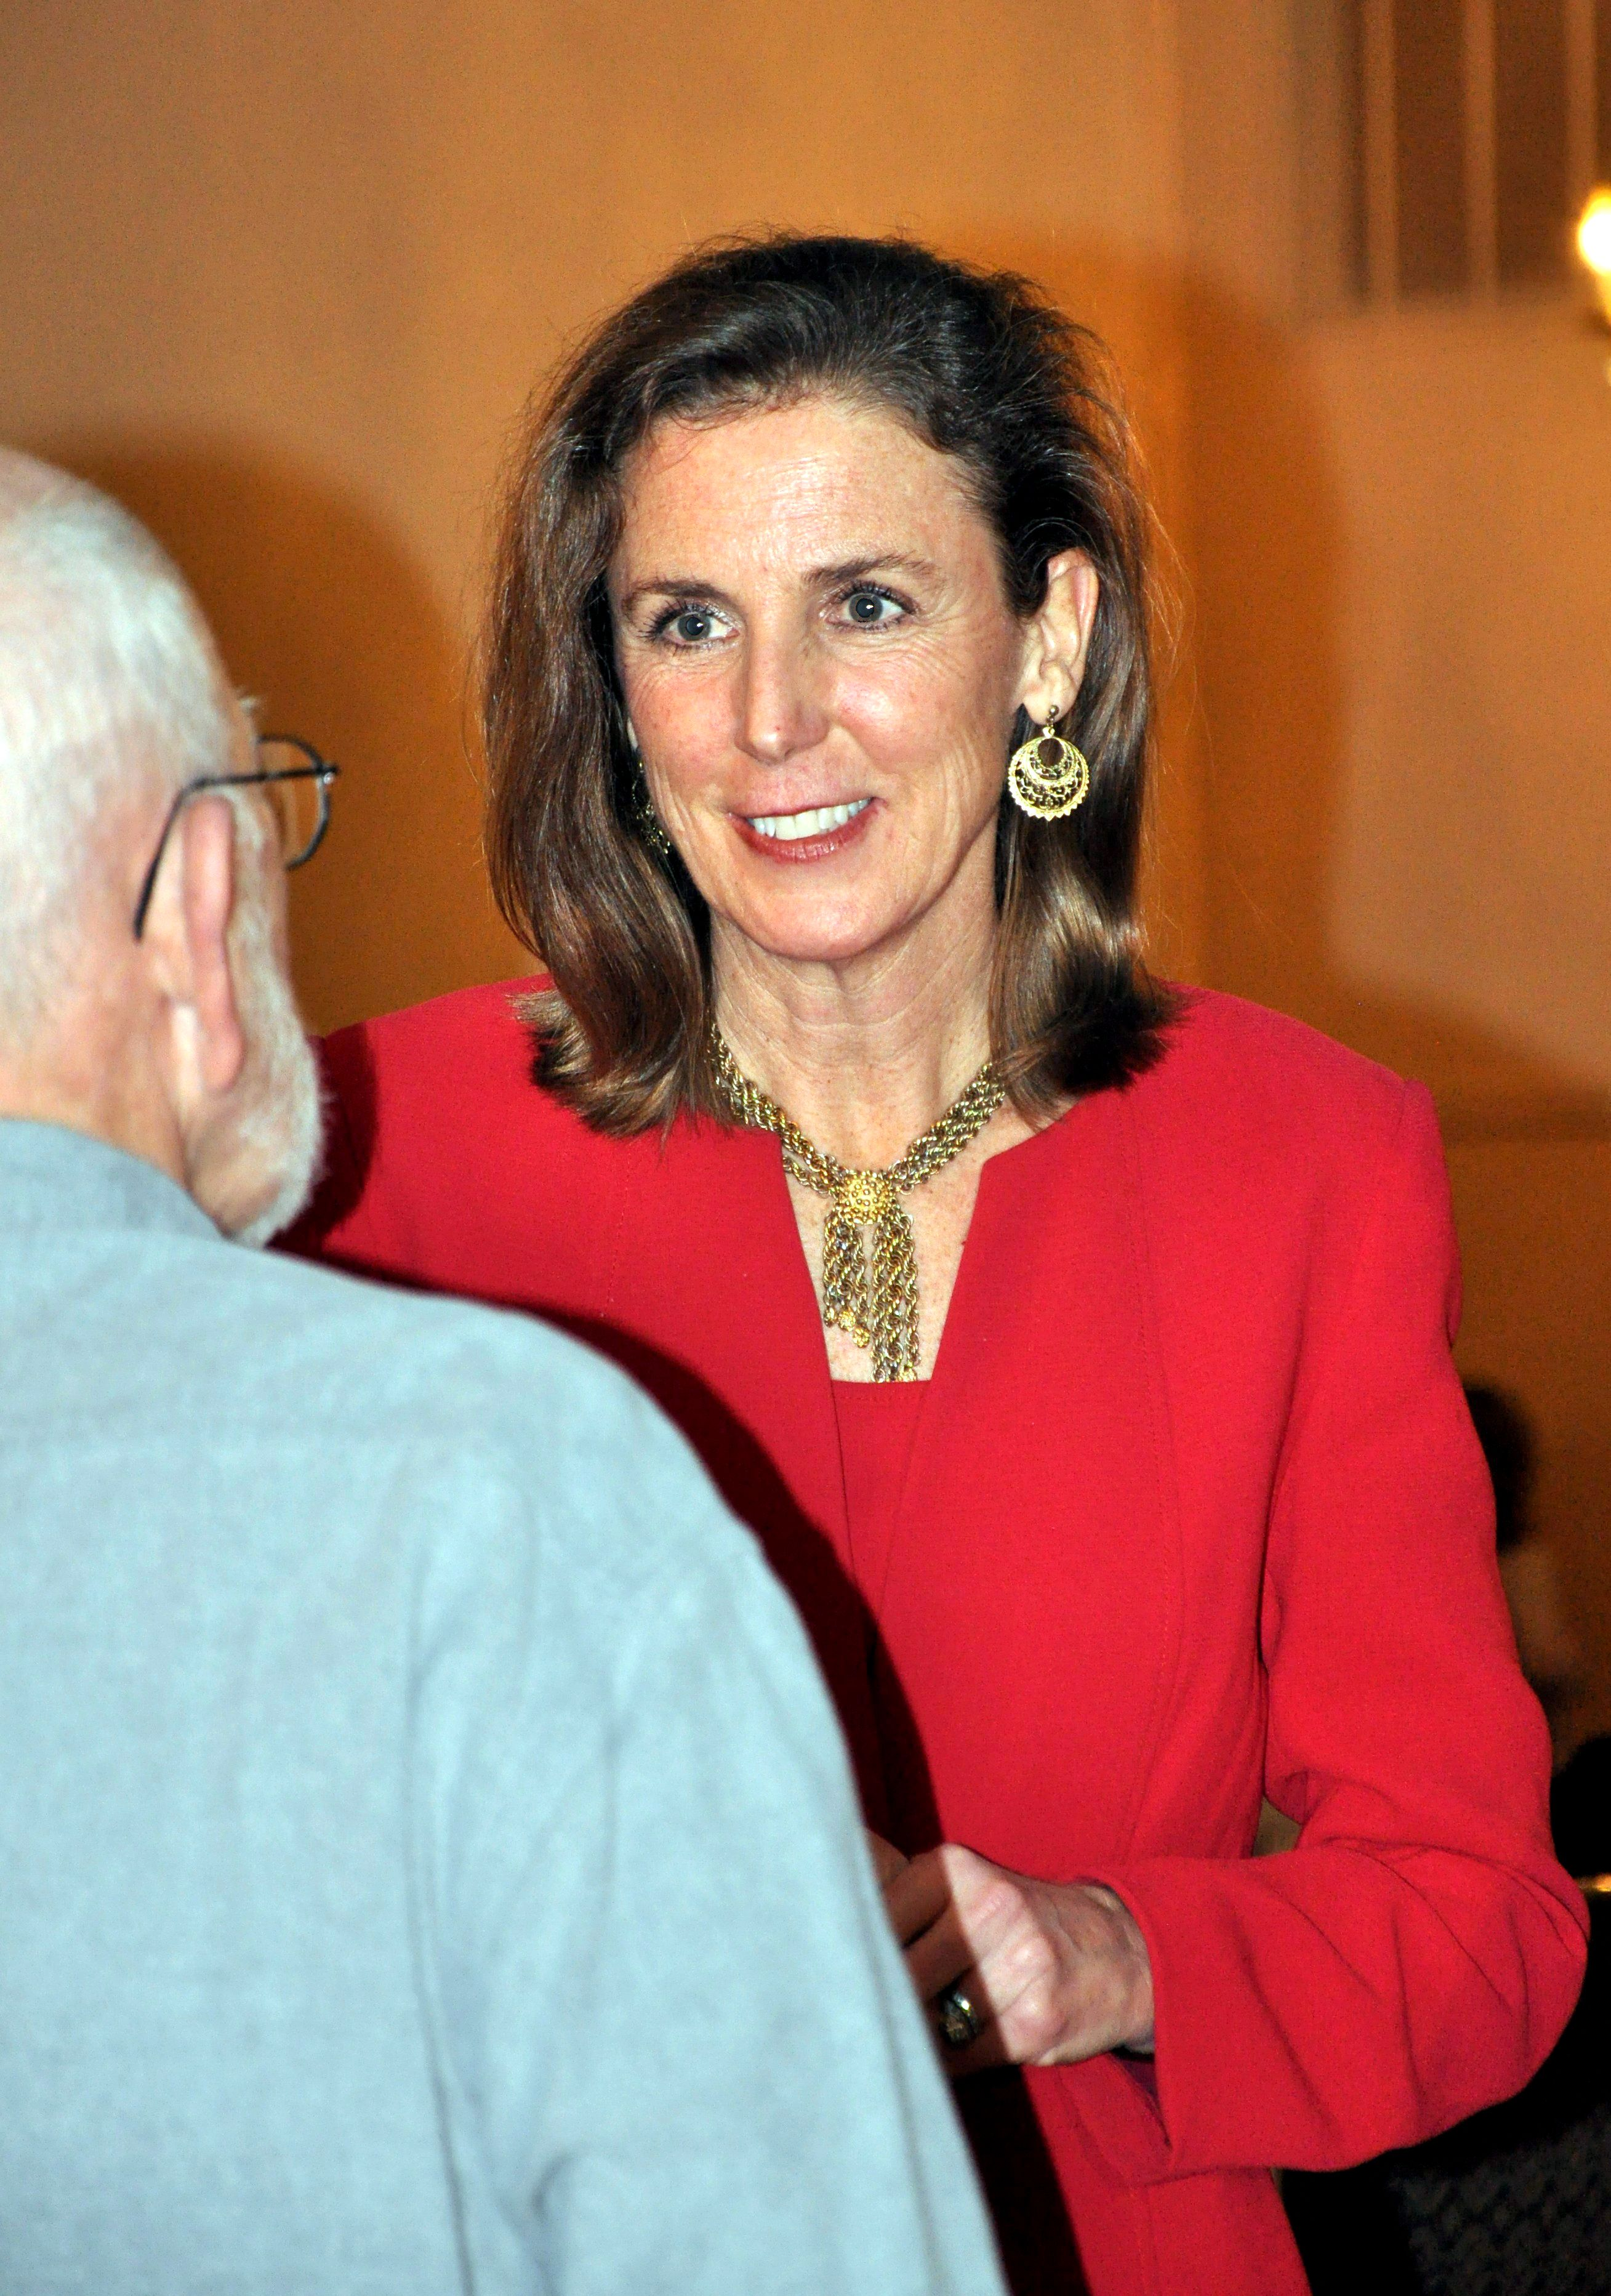 AMY MILLER/TIMES NEWS Katie McGinty, one of seven Democratic candidates for Pennsylvania governor, speaks with Carbon County resident Roy Christman Wednesday evening during a meet and greet at Kelly's Irish Pub in Lansford.